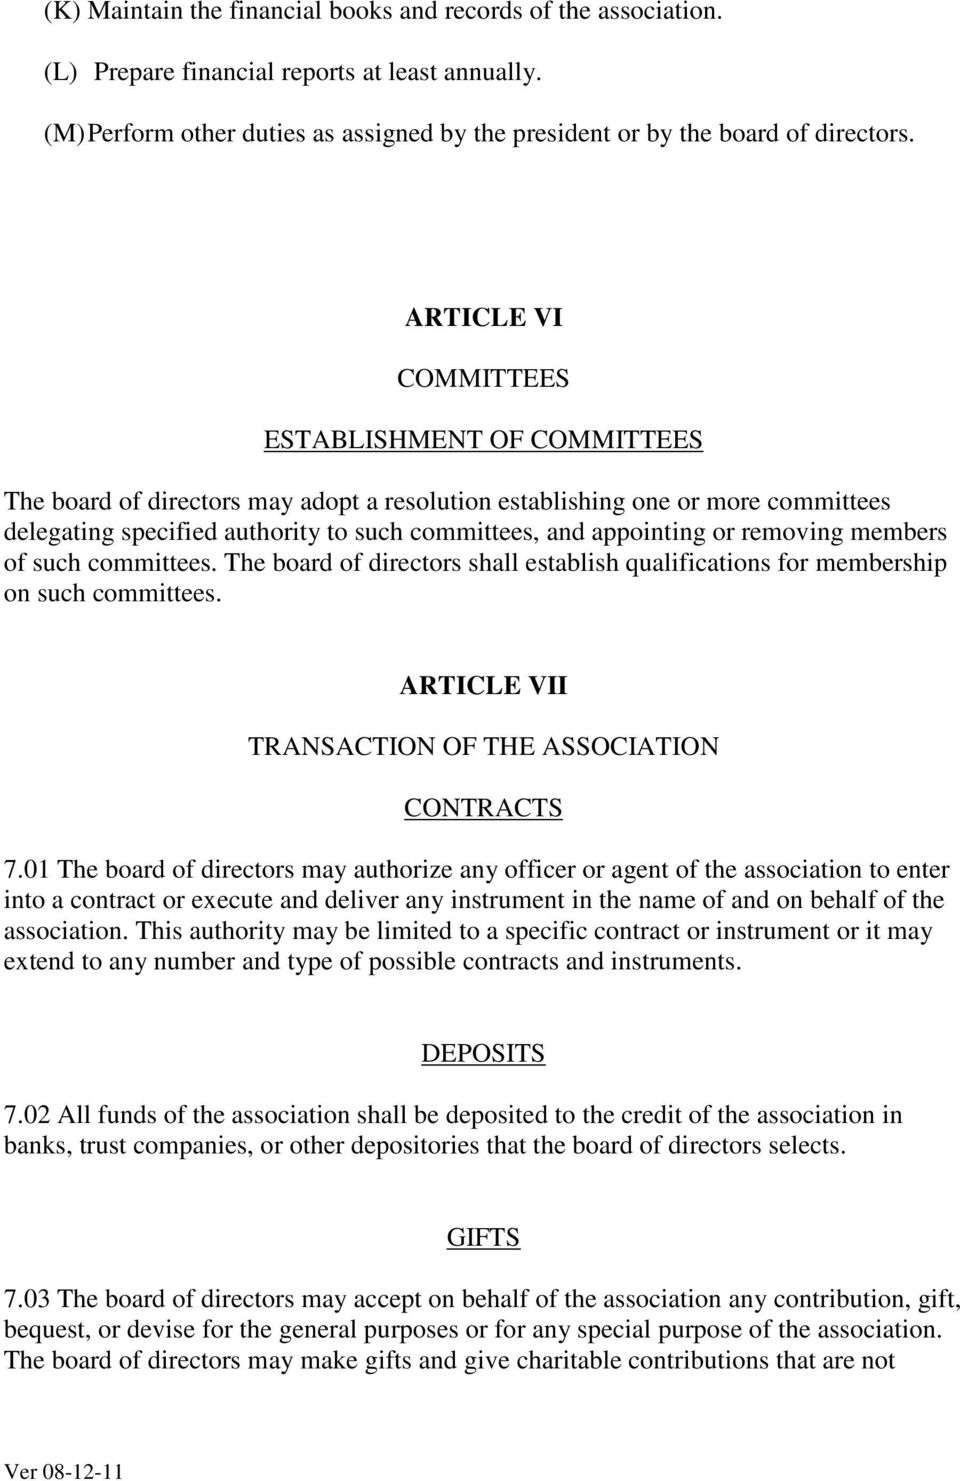 or removing members of such committees. The board of directors shall establish qualifications for membership on such committees. ARTICLE VII TRANSACTION OF THE ASSOCIATION CONTRACTS 7.